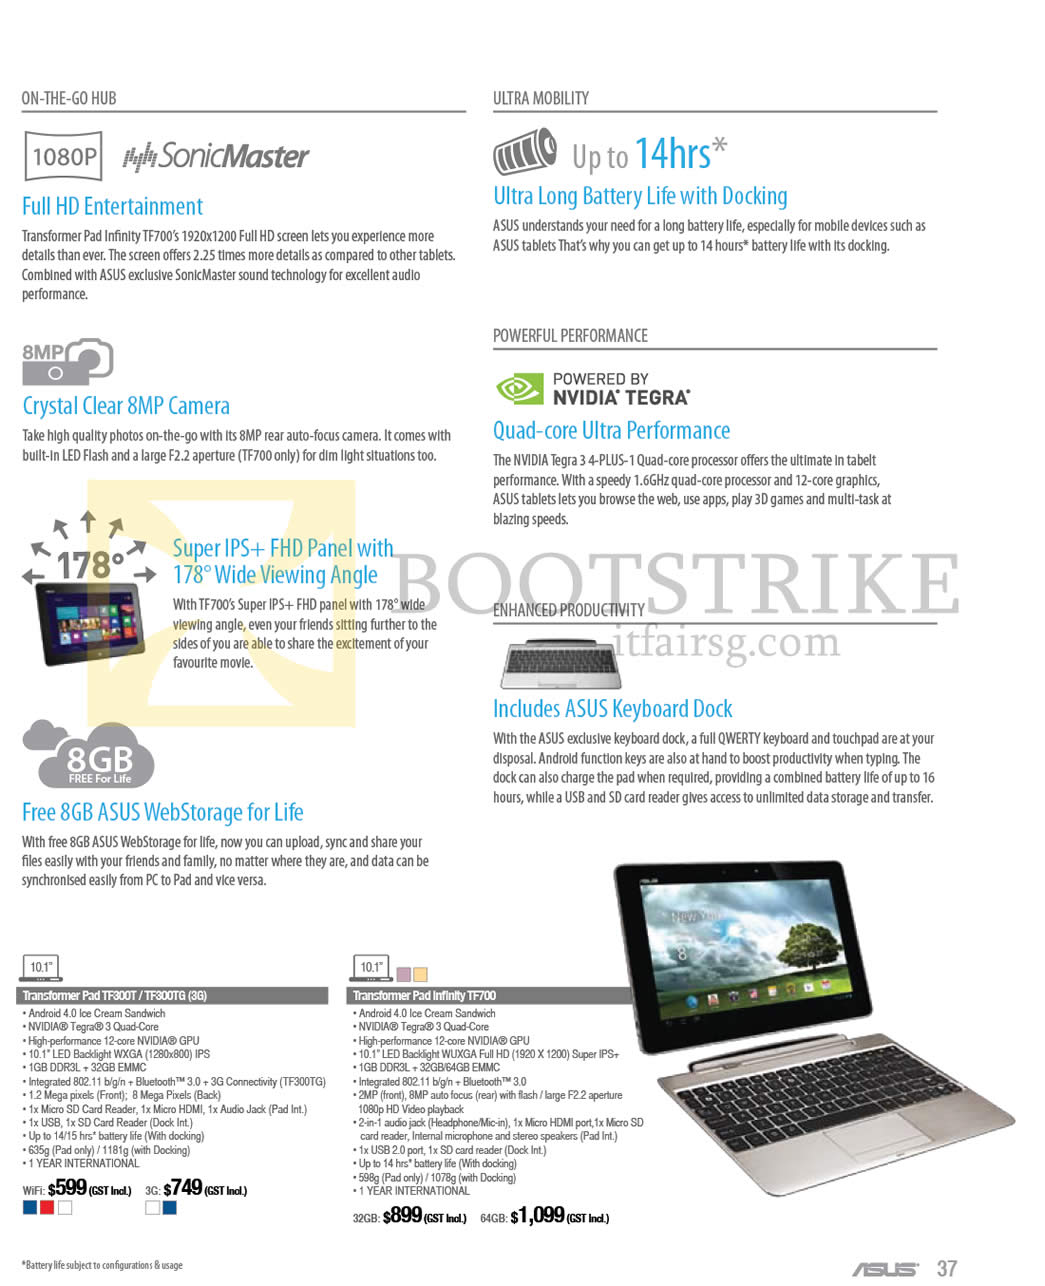 IT SHOW 2013 price list image brochure of ASUS Notebooks Tablet Transformer Pad TF300T TF300TG (3G), Transformer Pad Infinity TF700